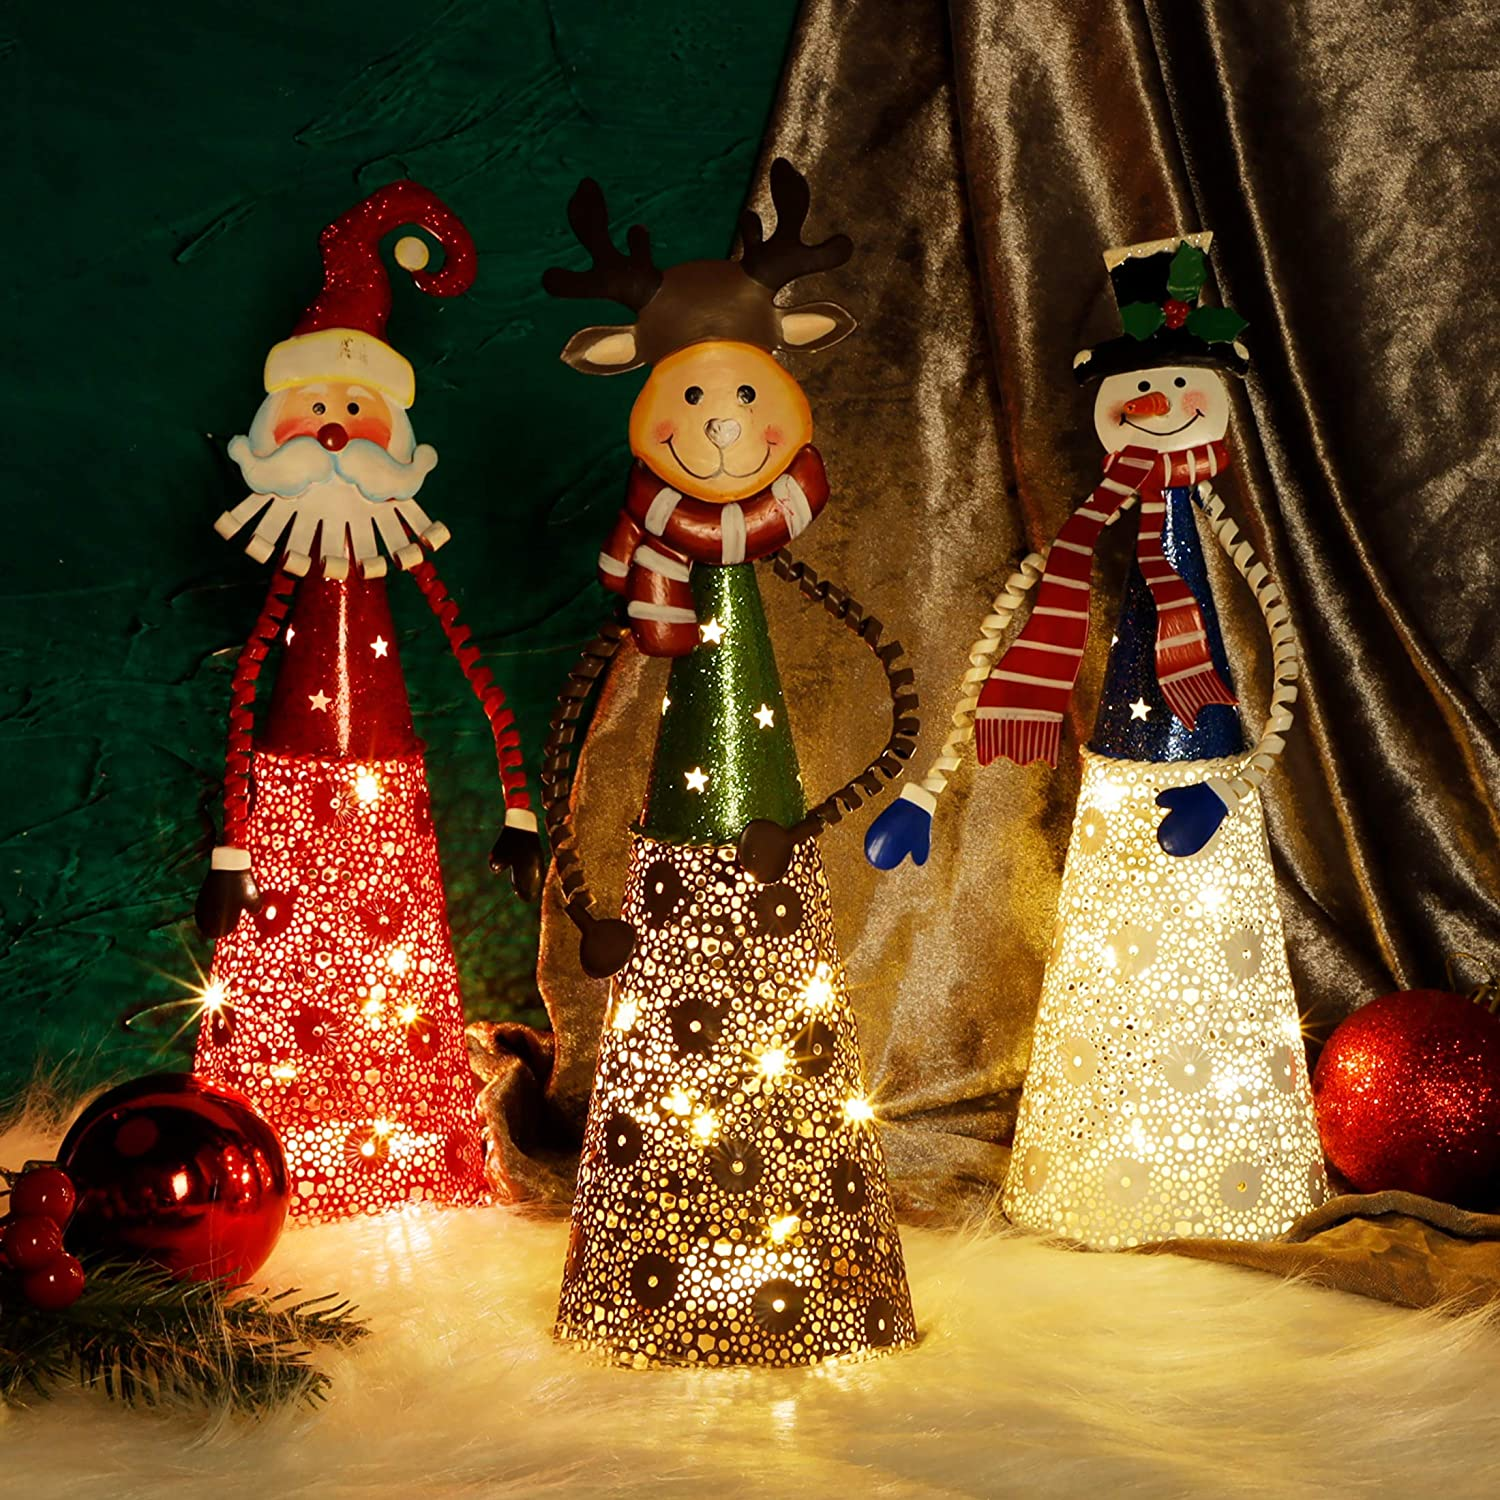 ATDAWN Lighted Christmas Table Decorations Set of 3 Indoor LED Lighting Santa Snowman Reindeer Xmas Holiday Party Tabletop Desk Ornament